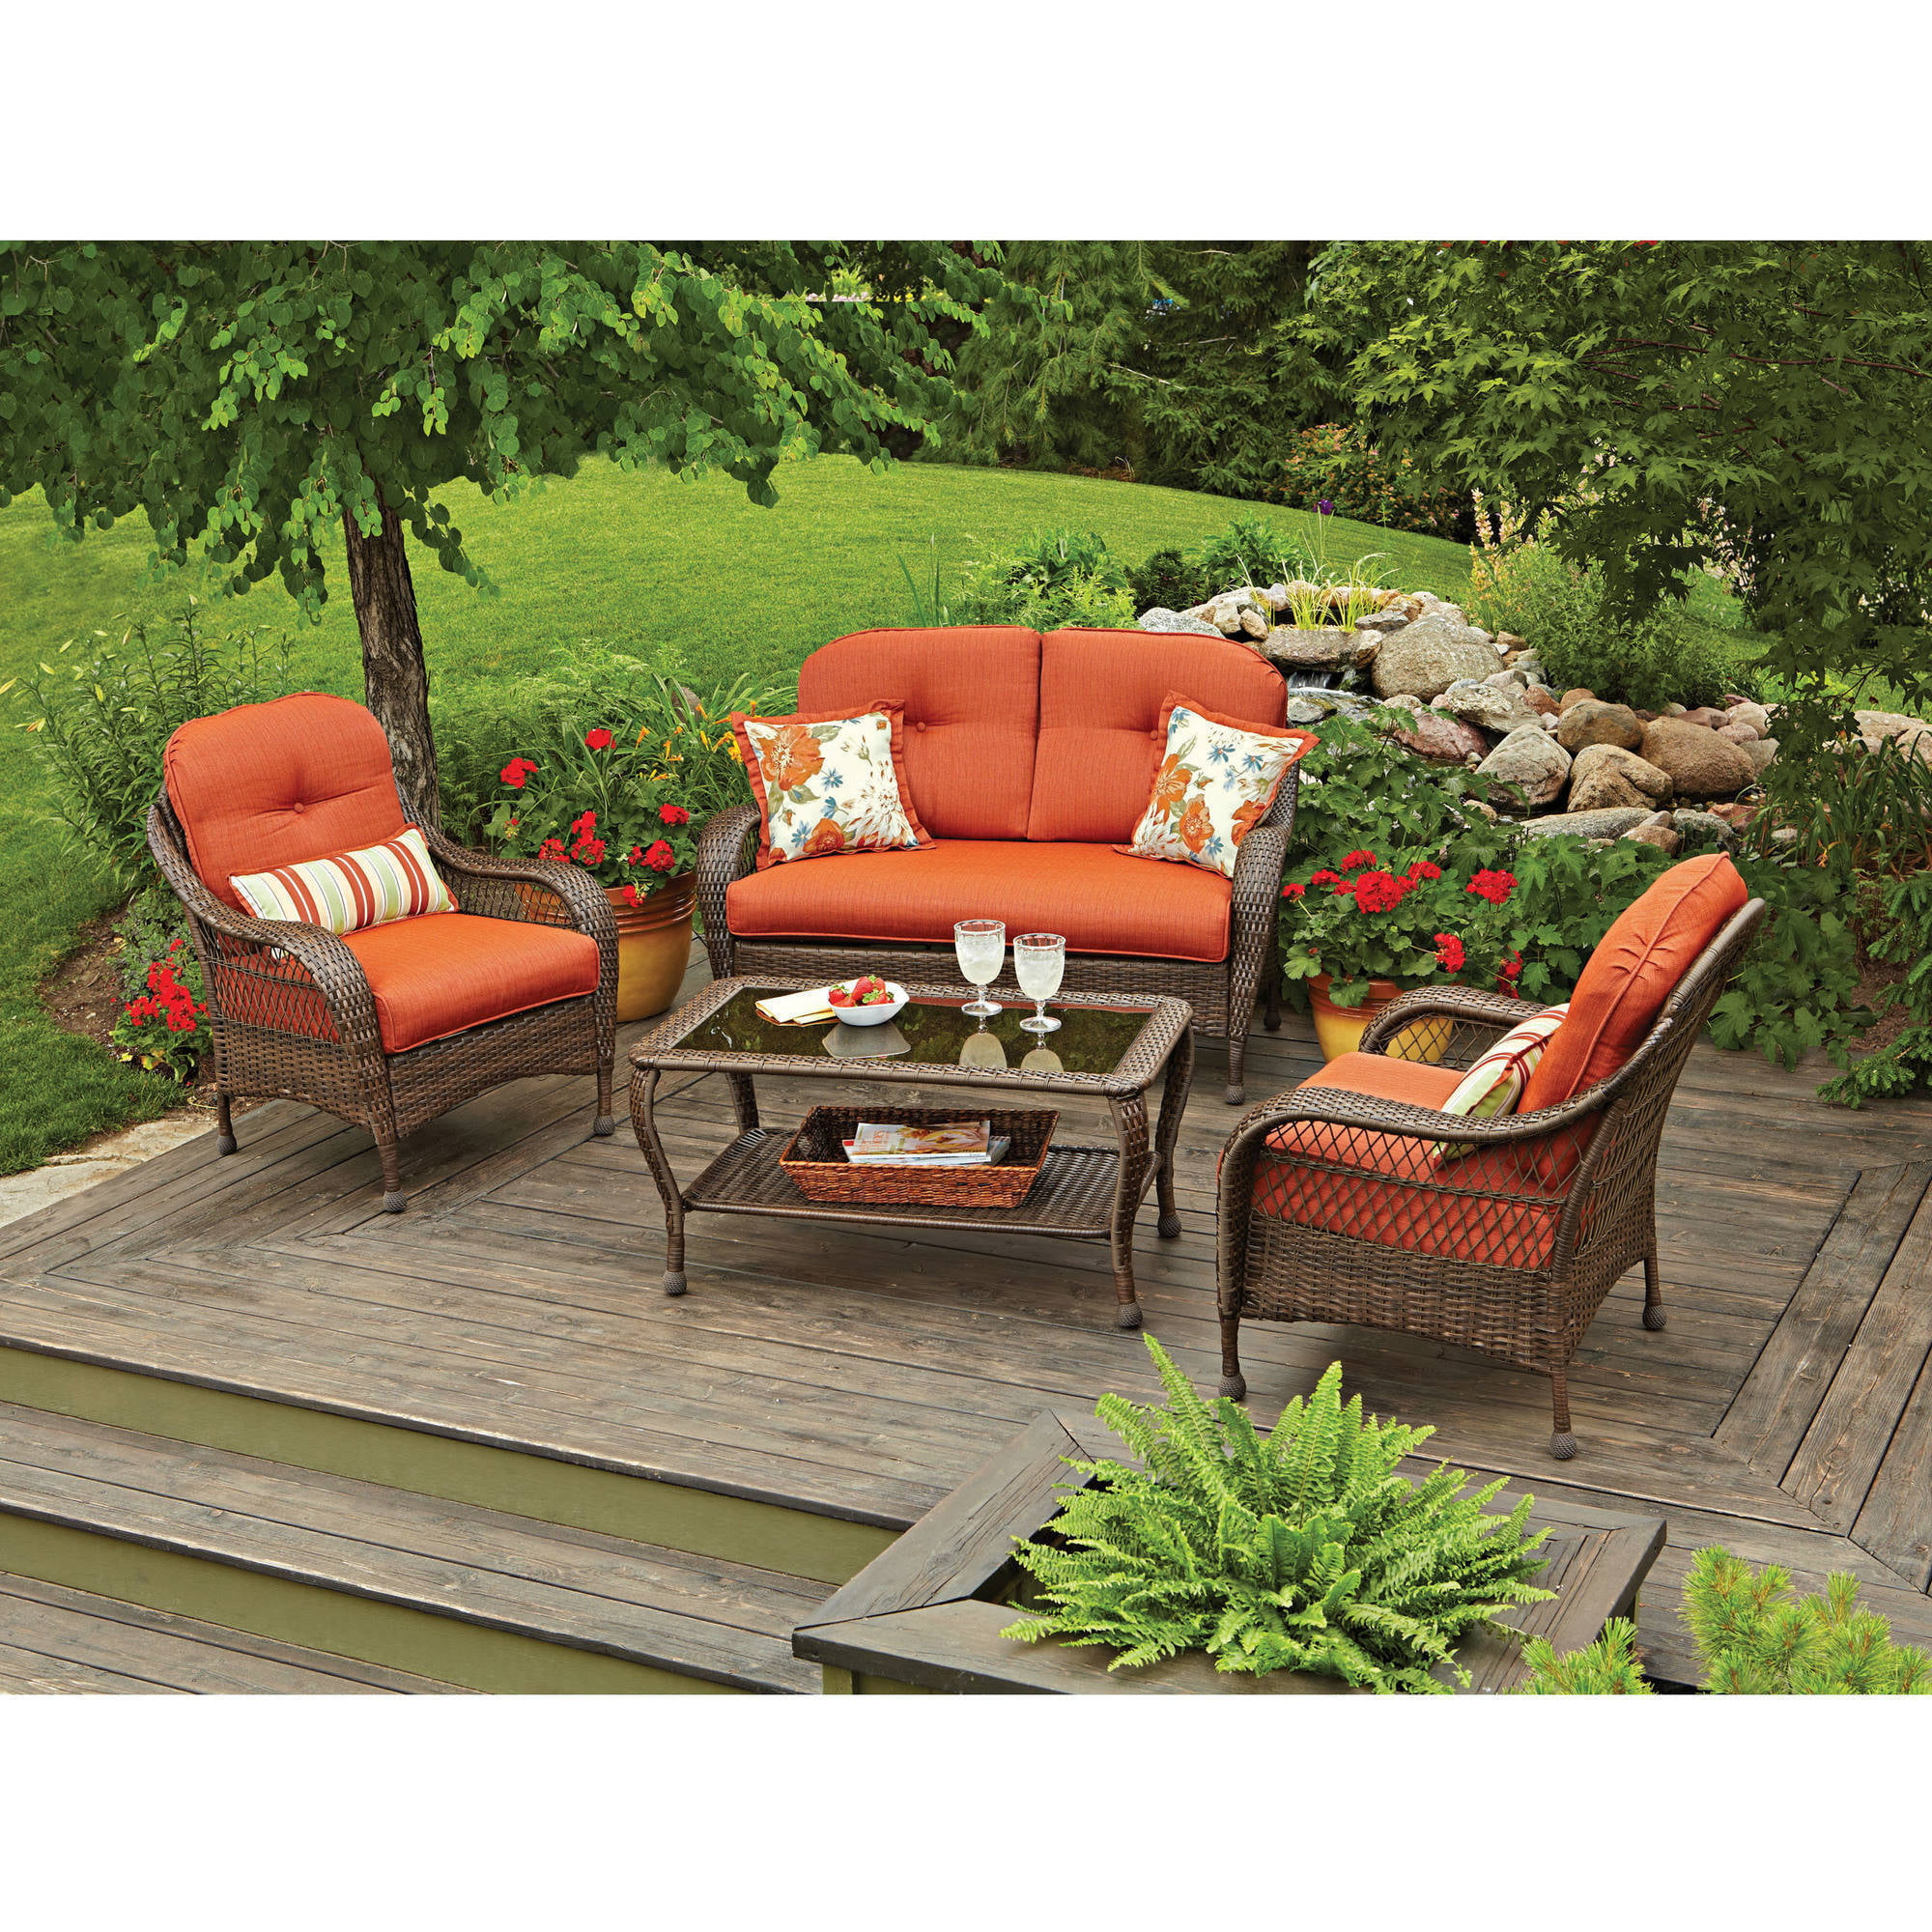 better homes and gardens azalea ridge 4piece patio set seats 4 walmartcom